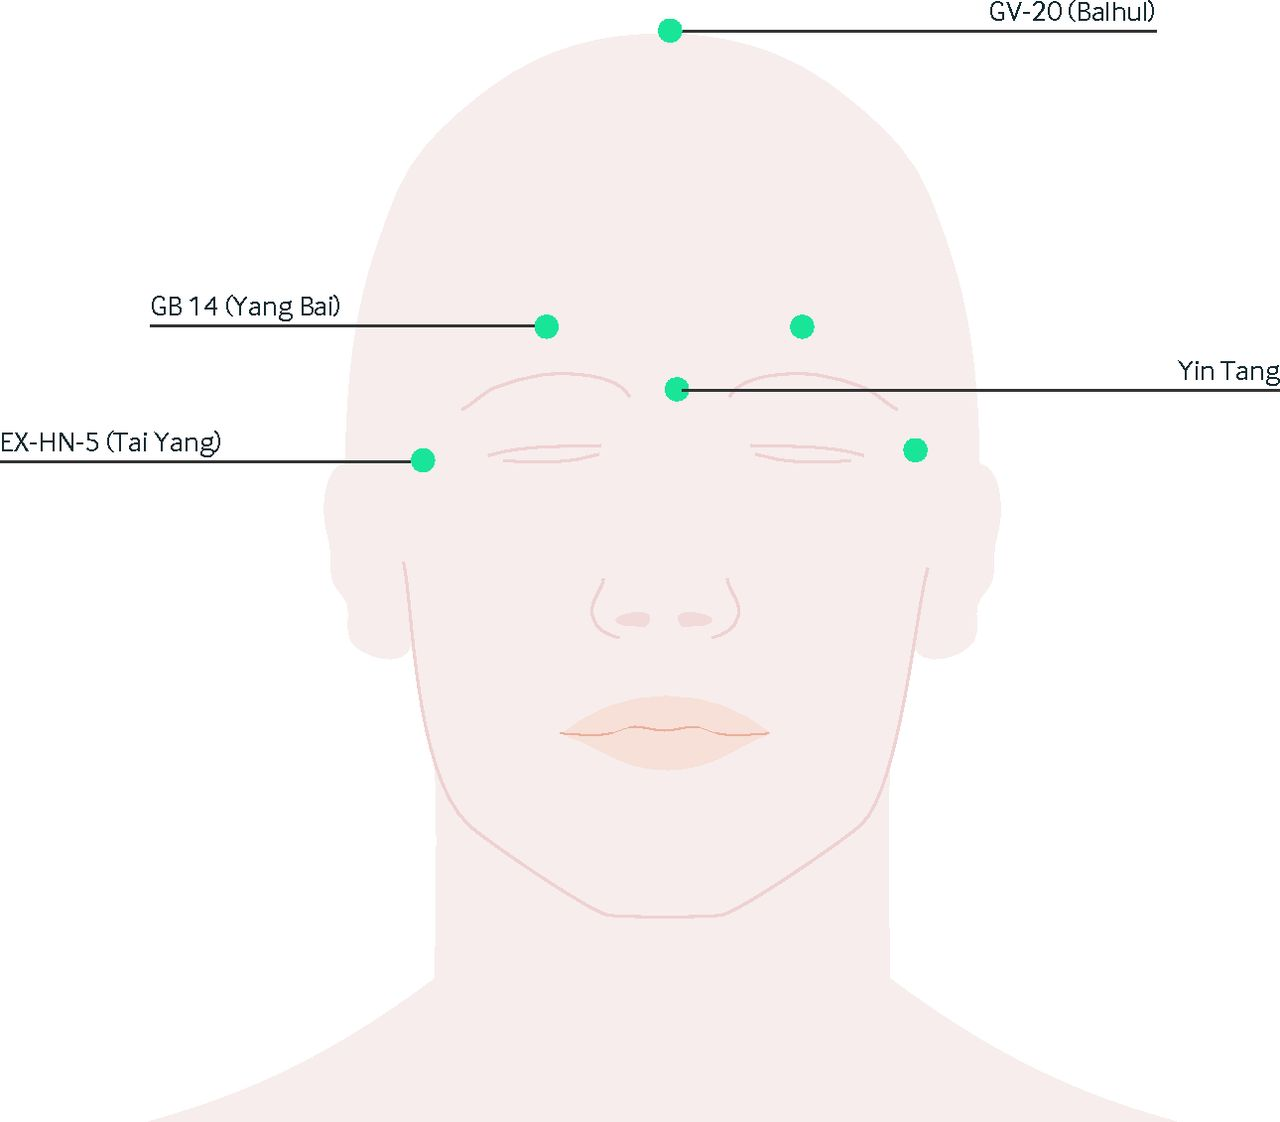 Complementary and integrative medicine in the management of fig 1 common acupuncture points on the face and head where needles are inserted in combinations to treat various types of headaches pooptronica Image collections